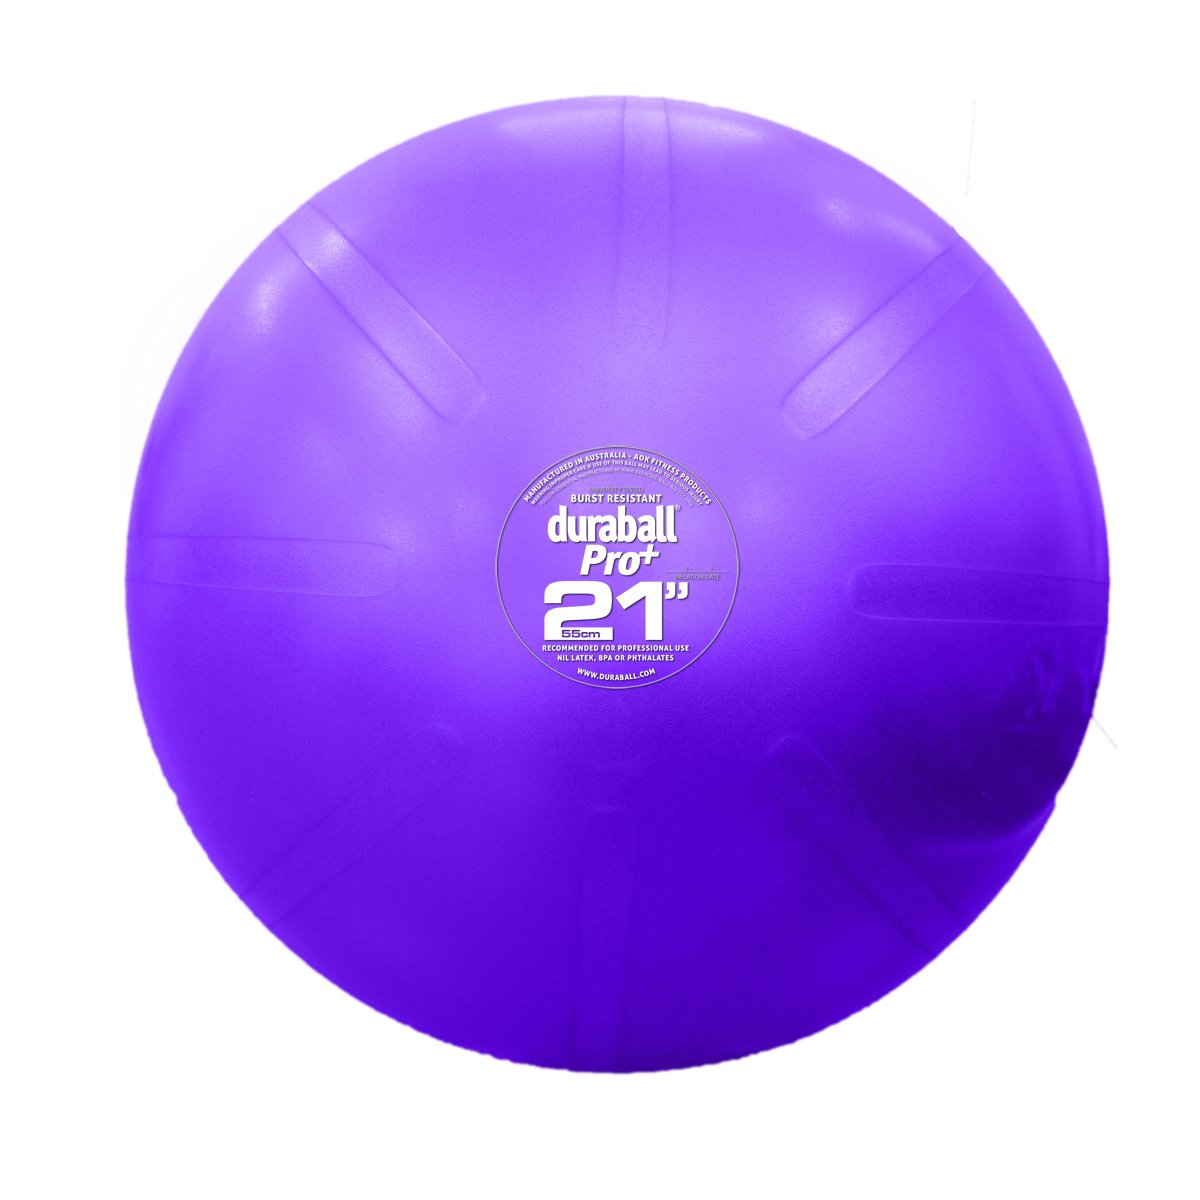 Fitterfirst Duraball Pro Exercise Ball - 21'' - Purple